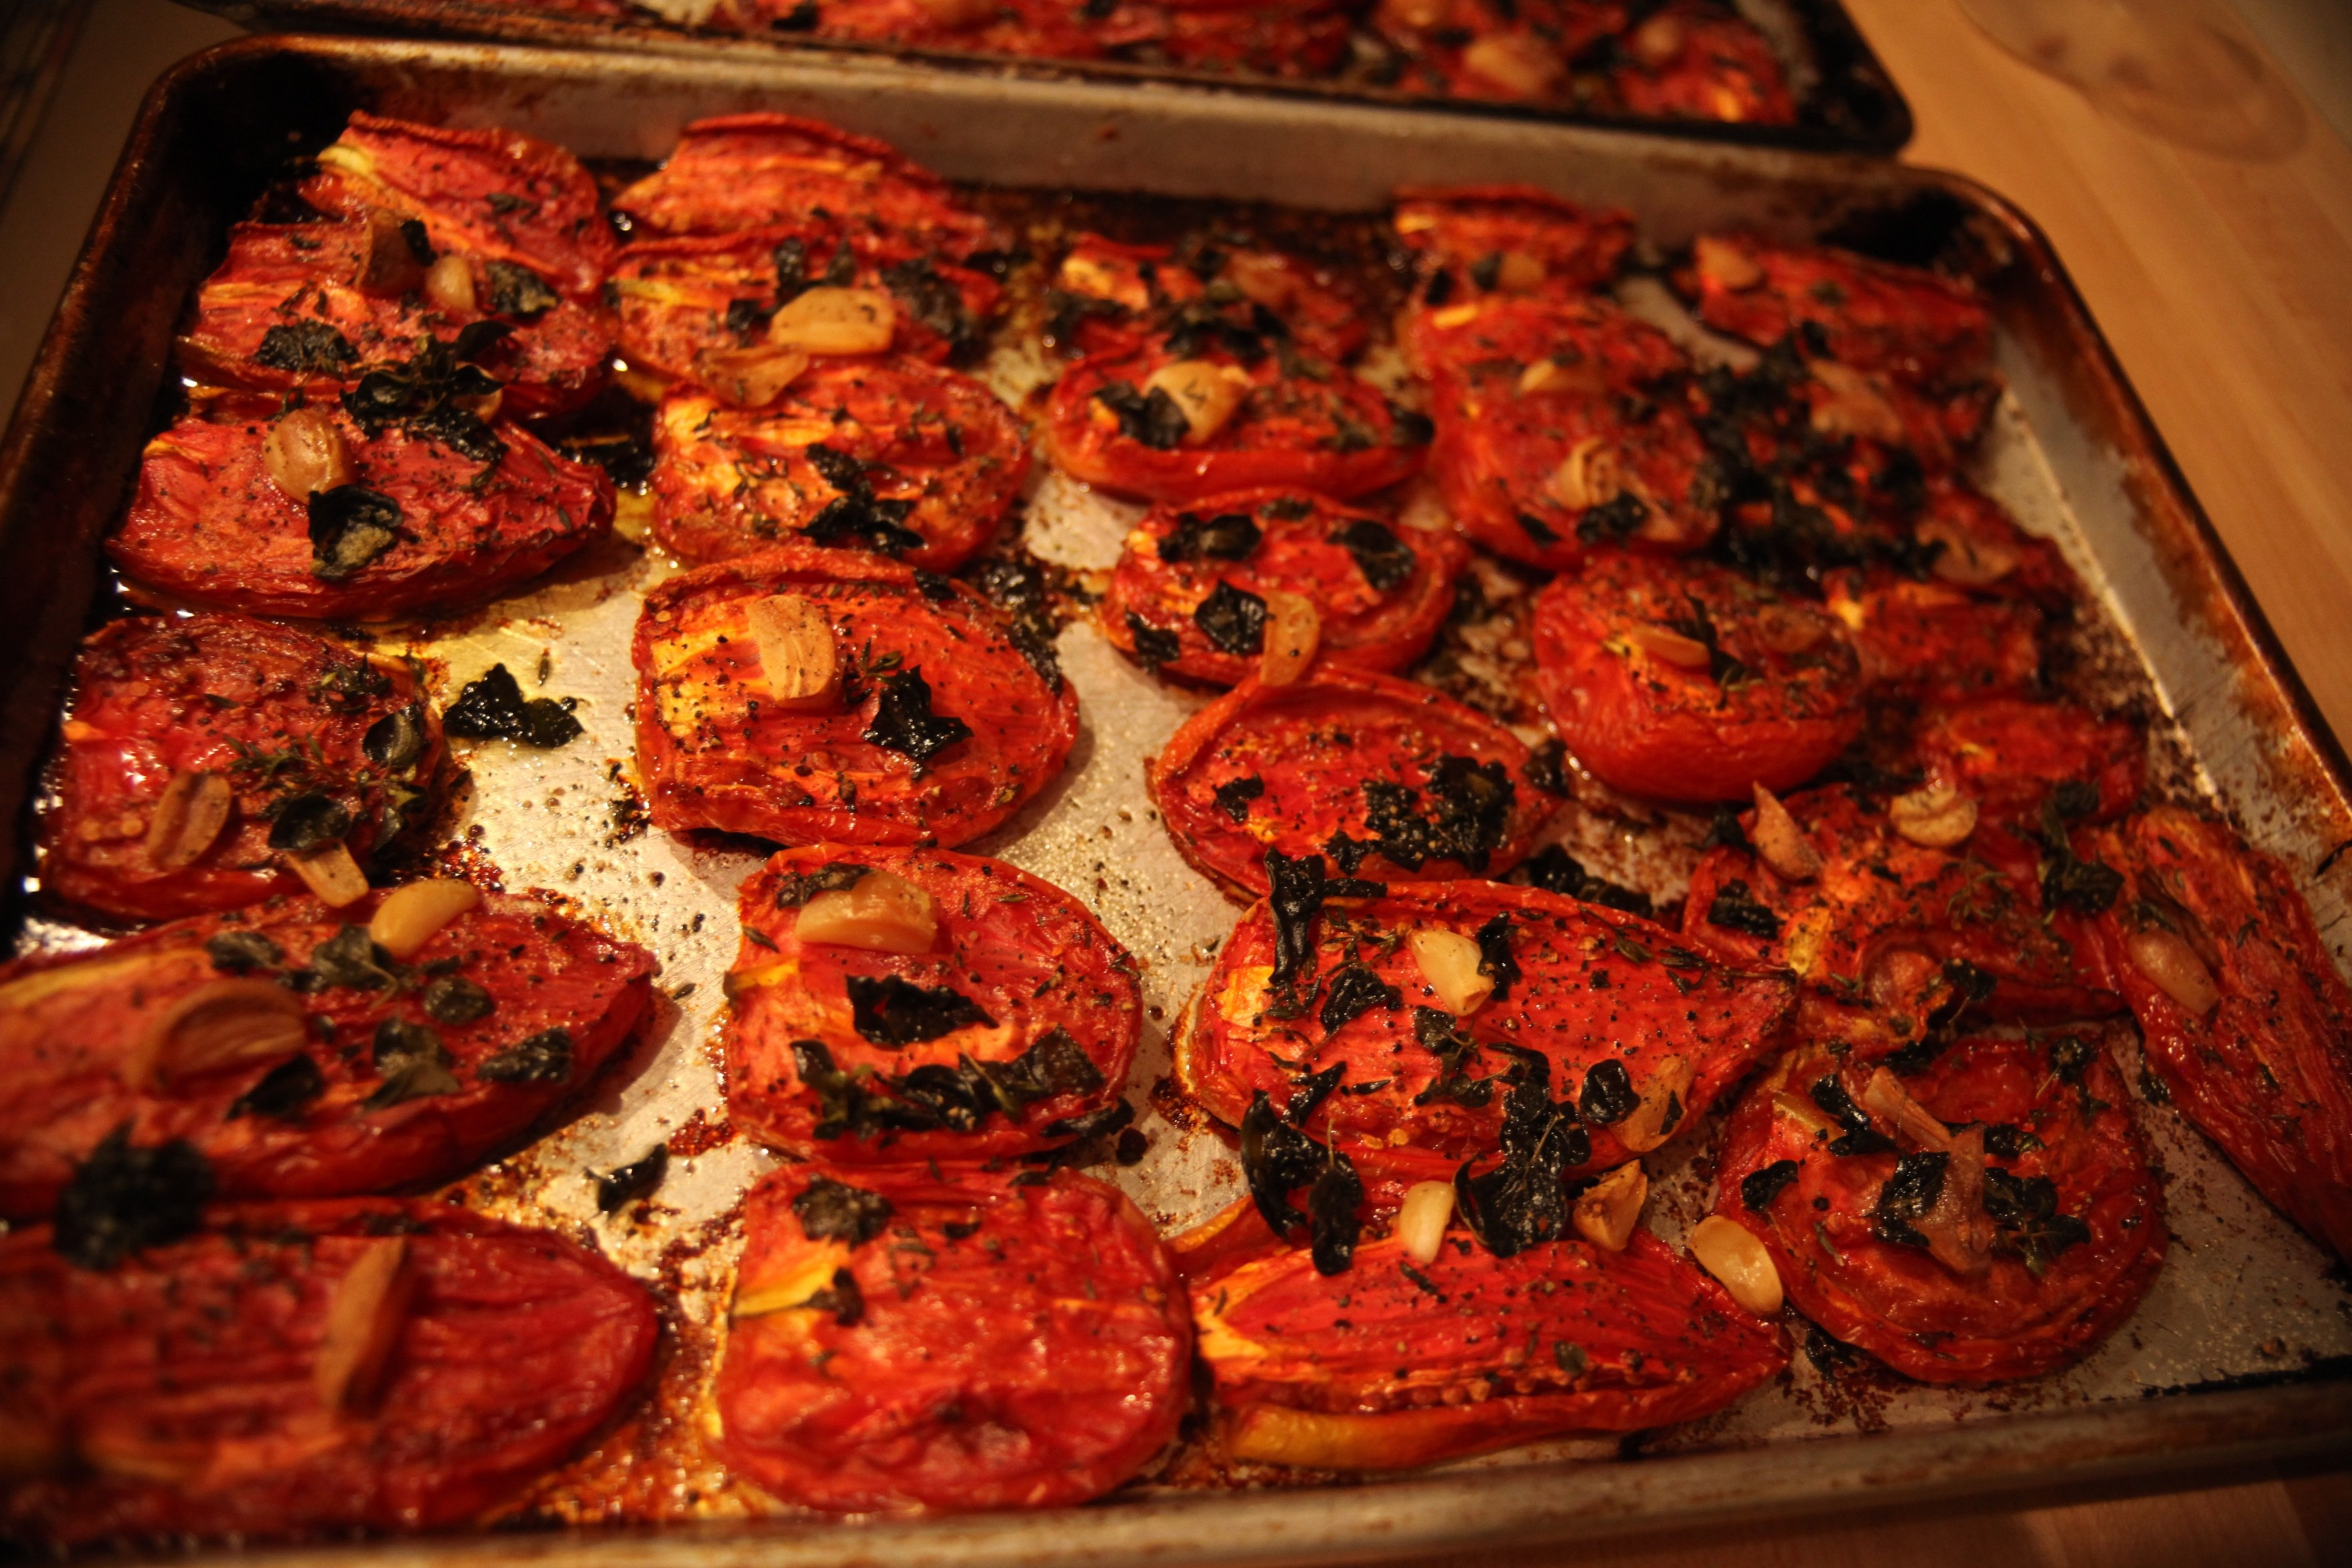 roasted toms #2,5